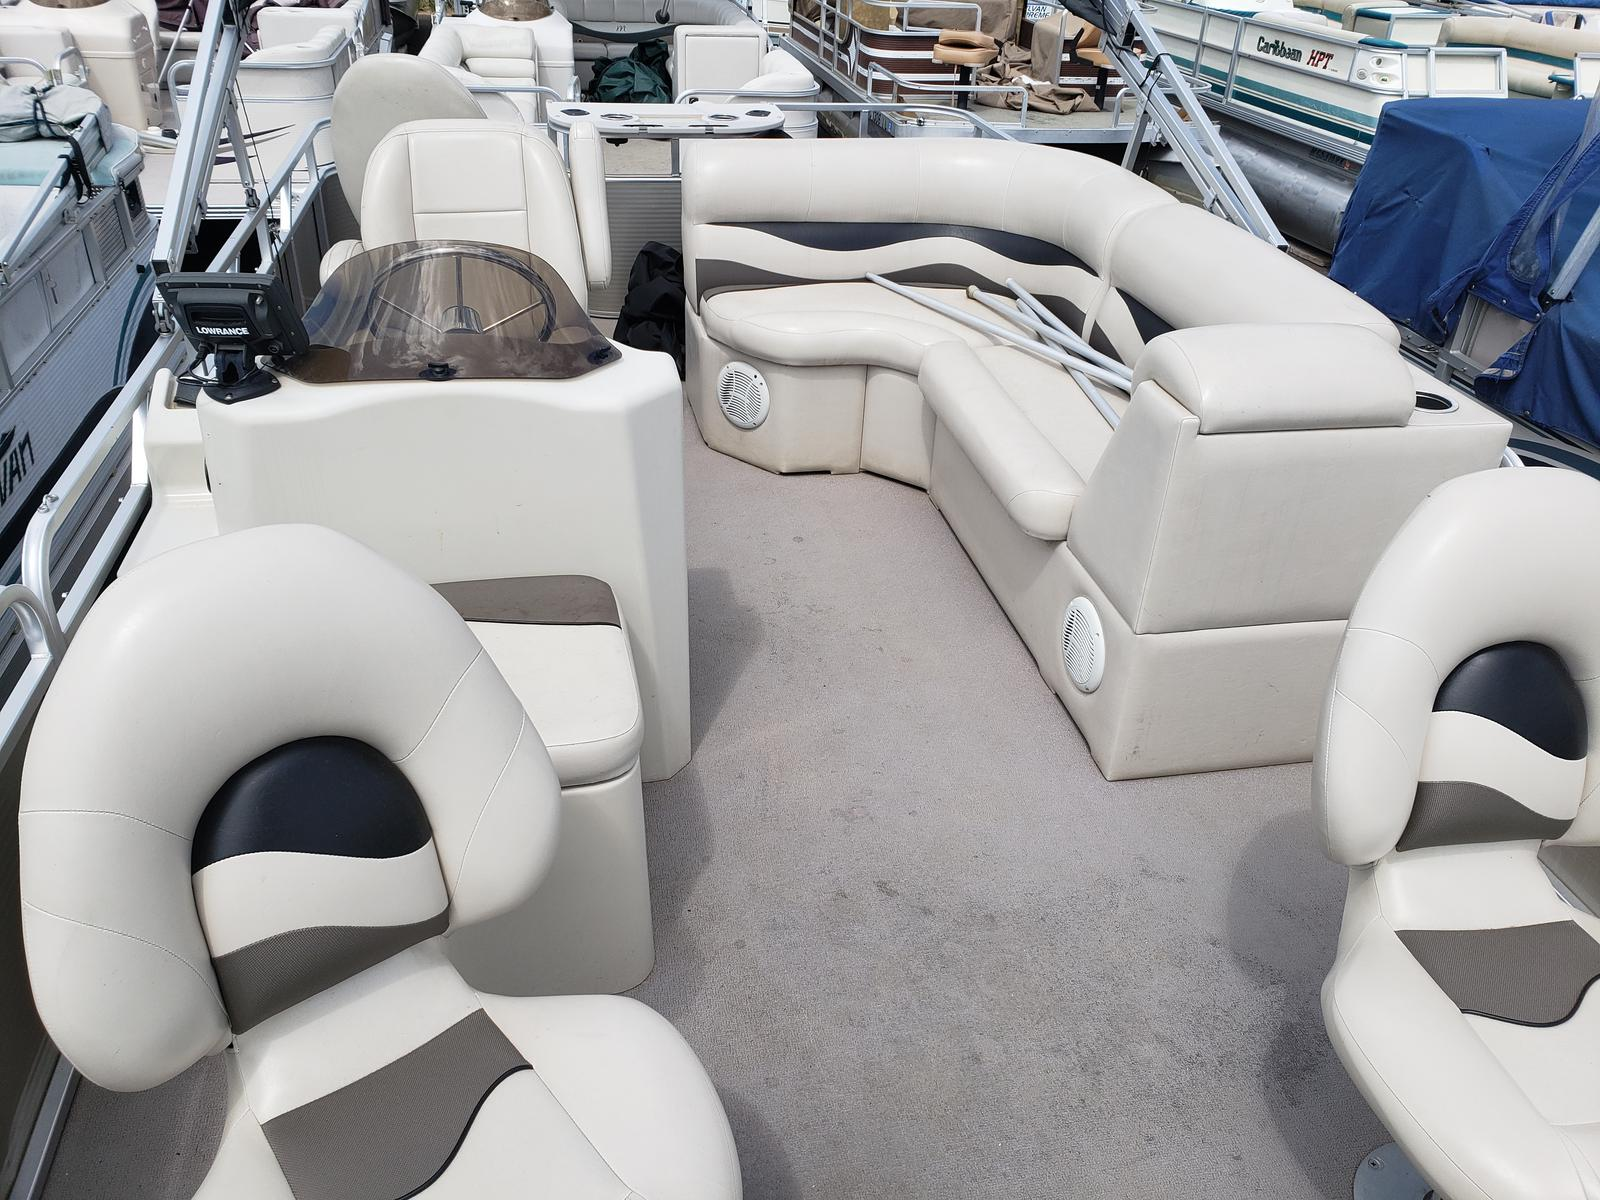 Inventory from Apex Marine and Weeres Lakeside Motor Sports